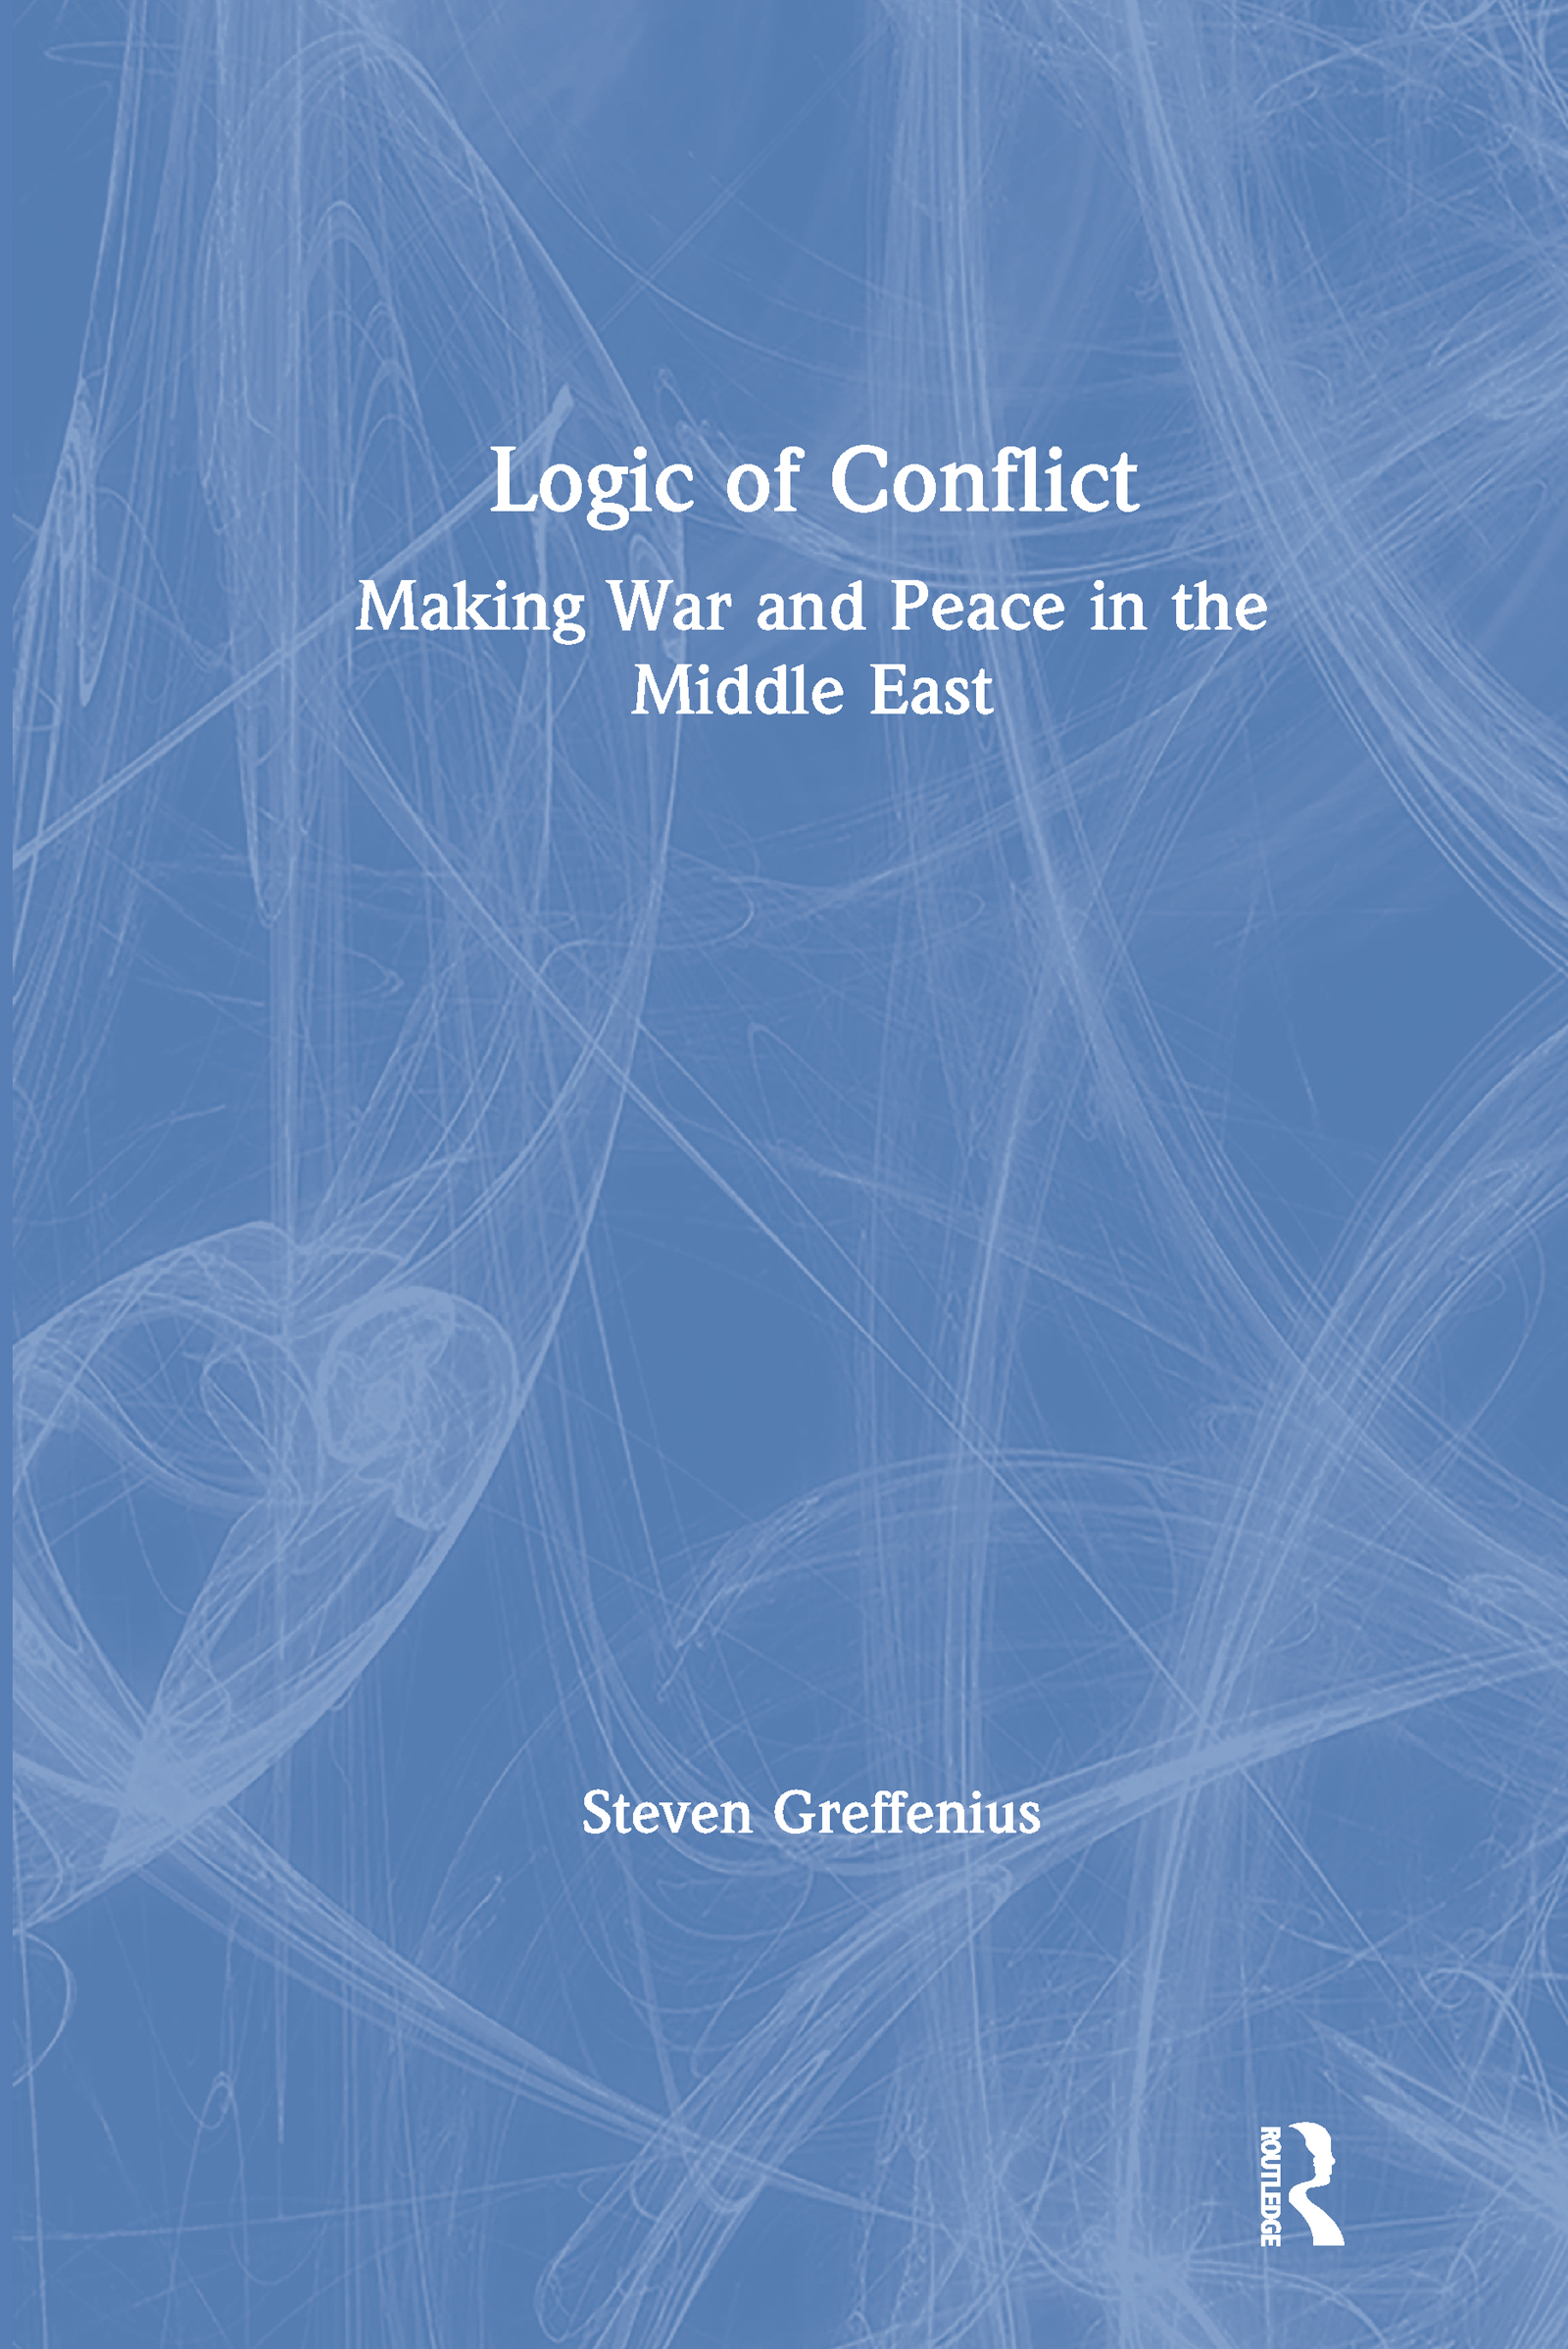 Logic of Conflict: Making War and Peace in the Middle East: Making War and Peace in the Middle East book cover